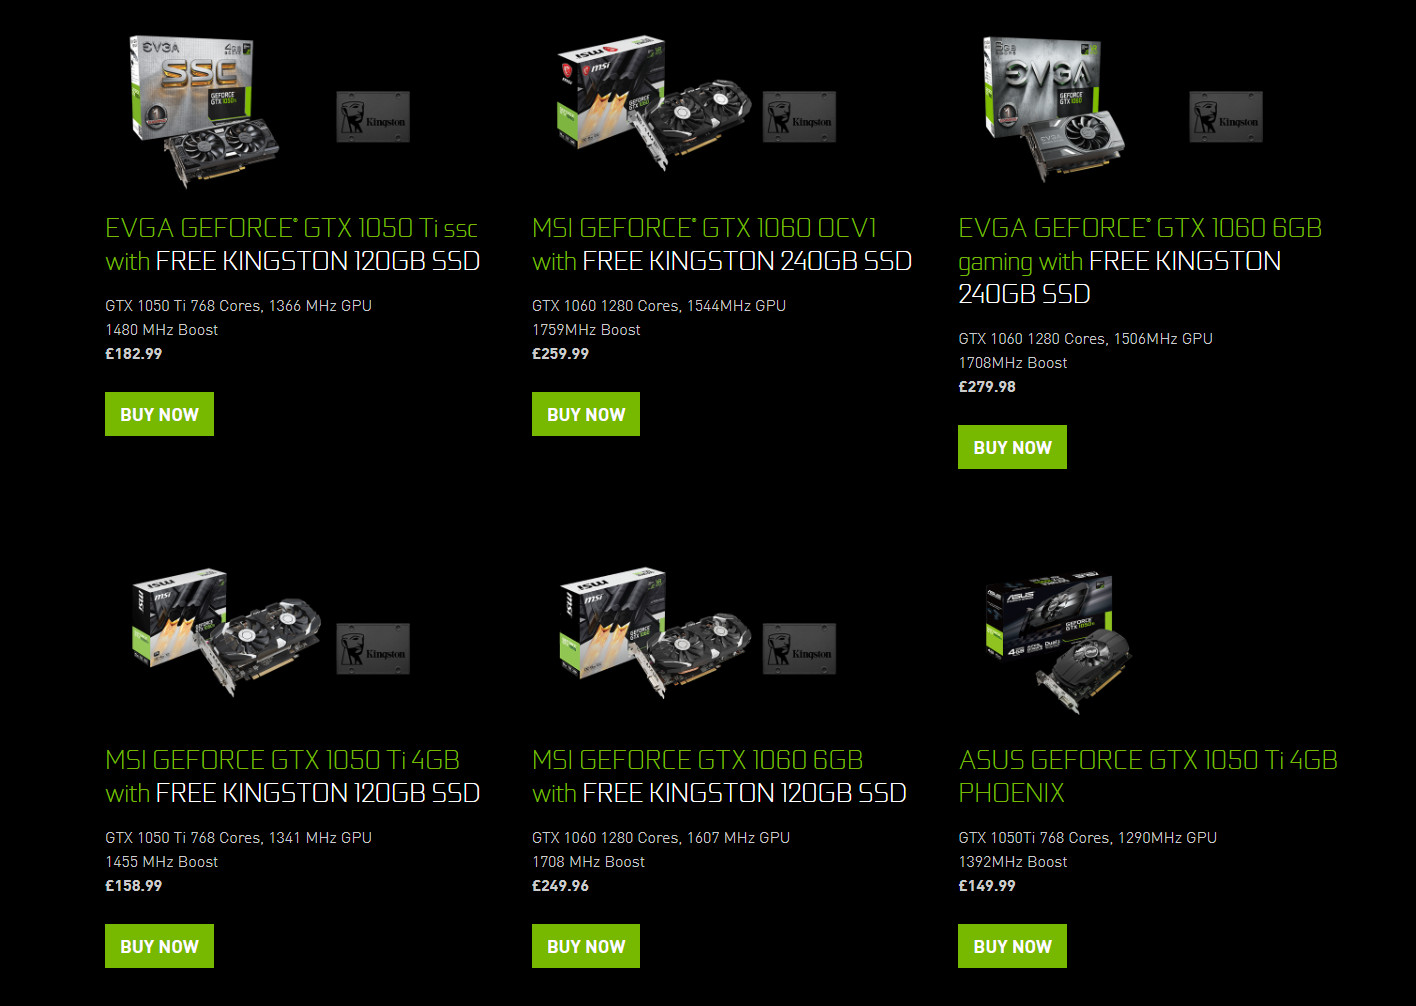 You can get a free Kingston SSD with purchase of Nvidia GTX